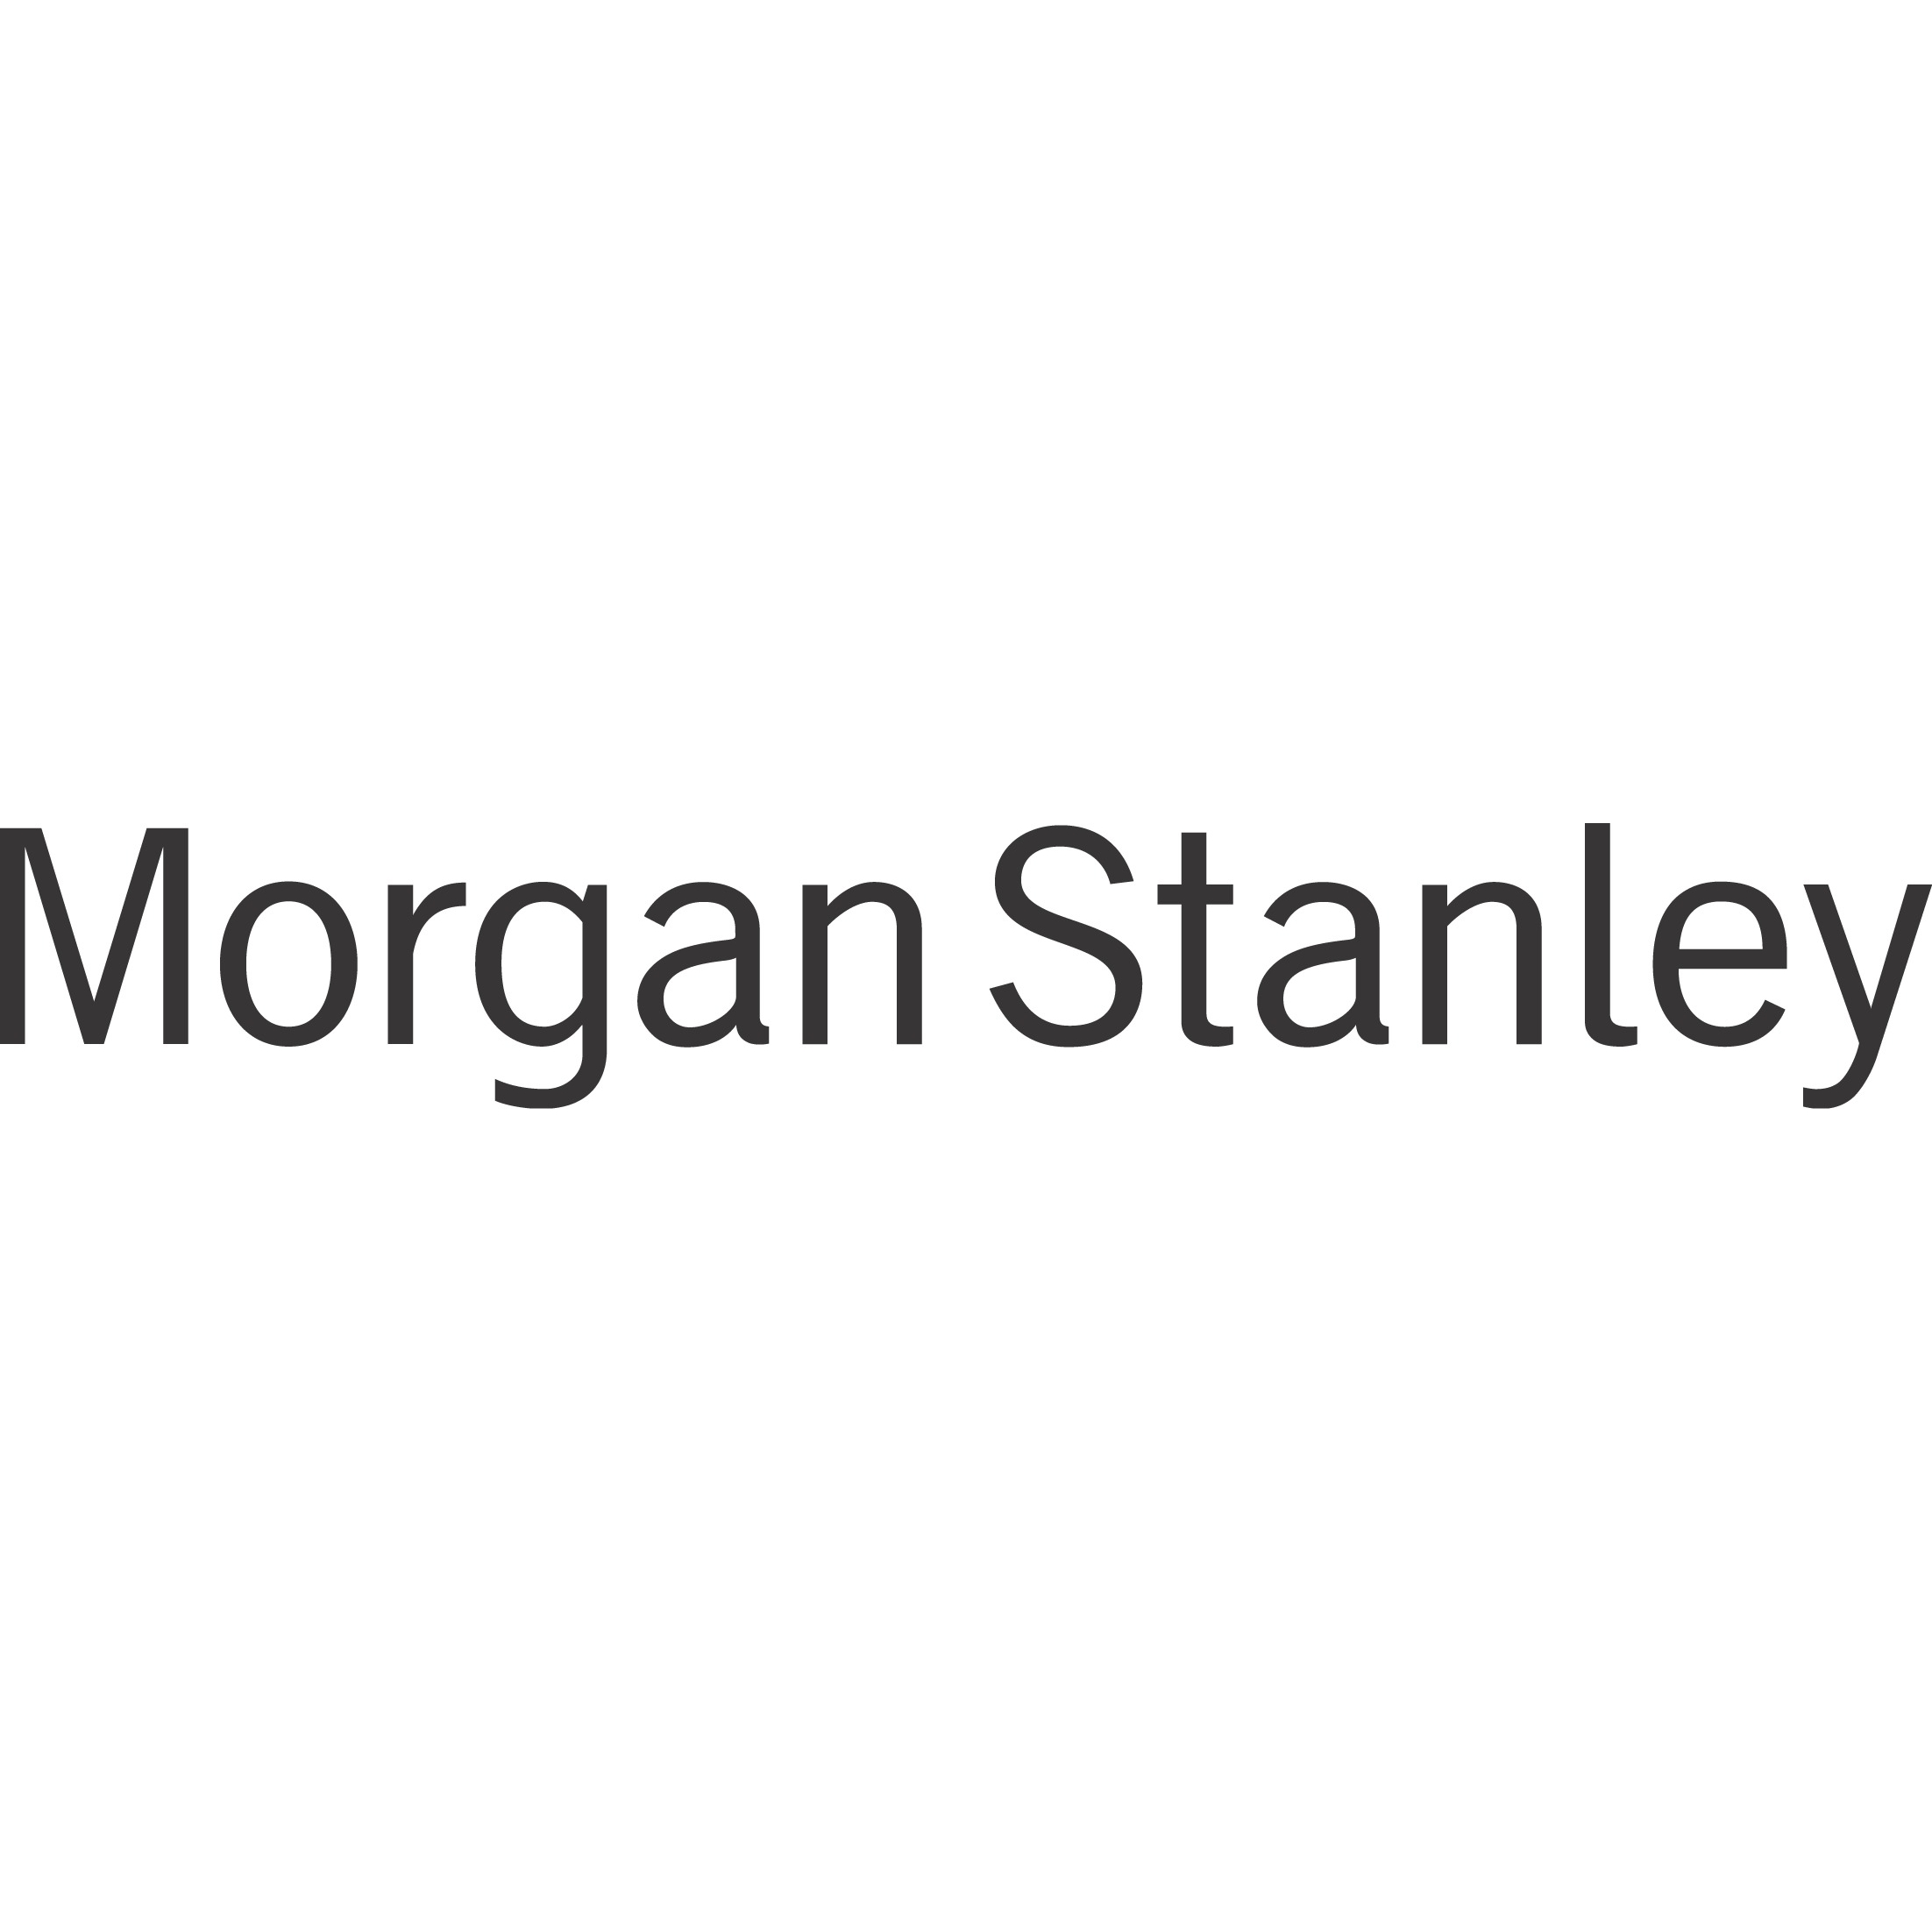 W Morgan Fister - Morgan Stanley